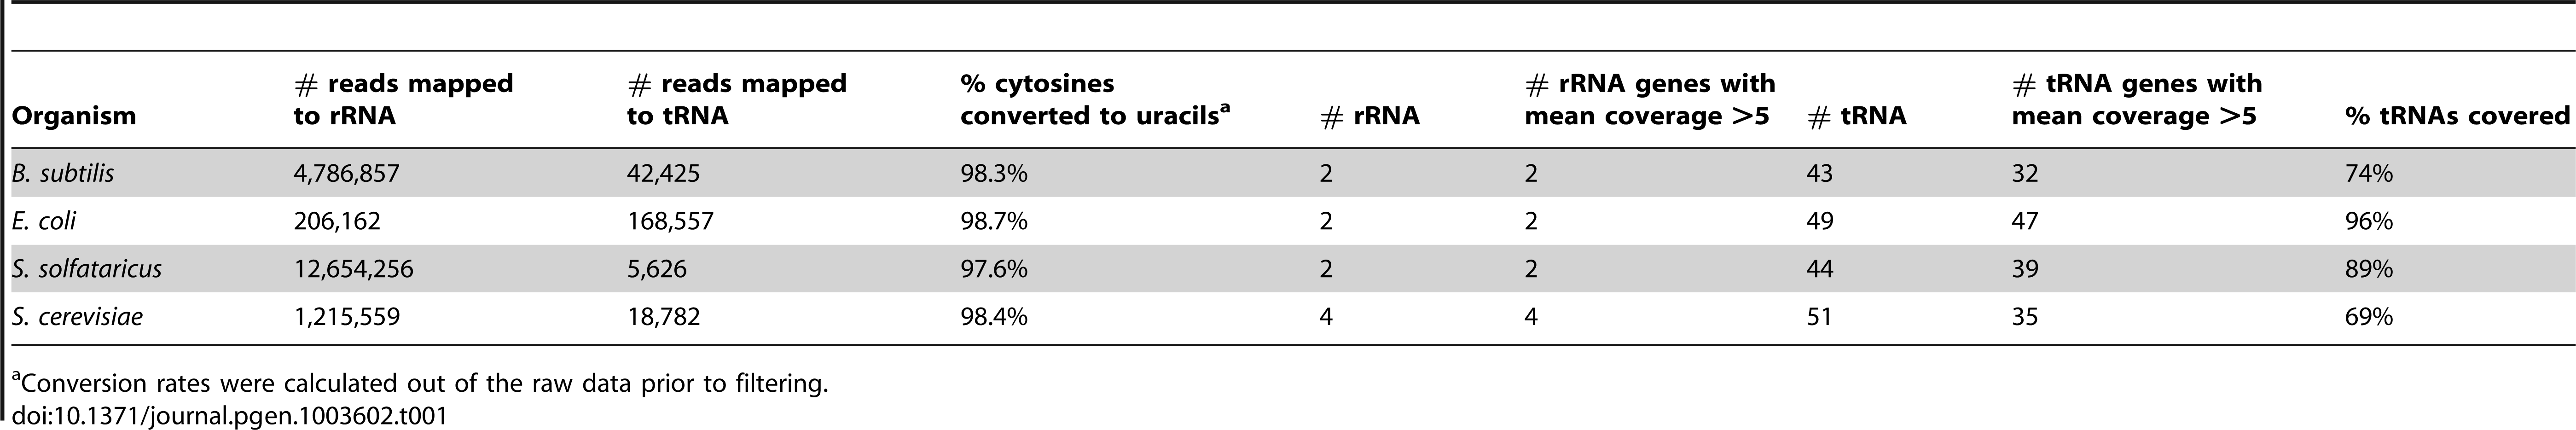 Sequencing reads covering rRNAs and tRNAs in the studied organisms.